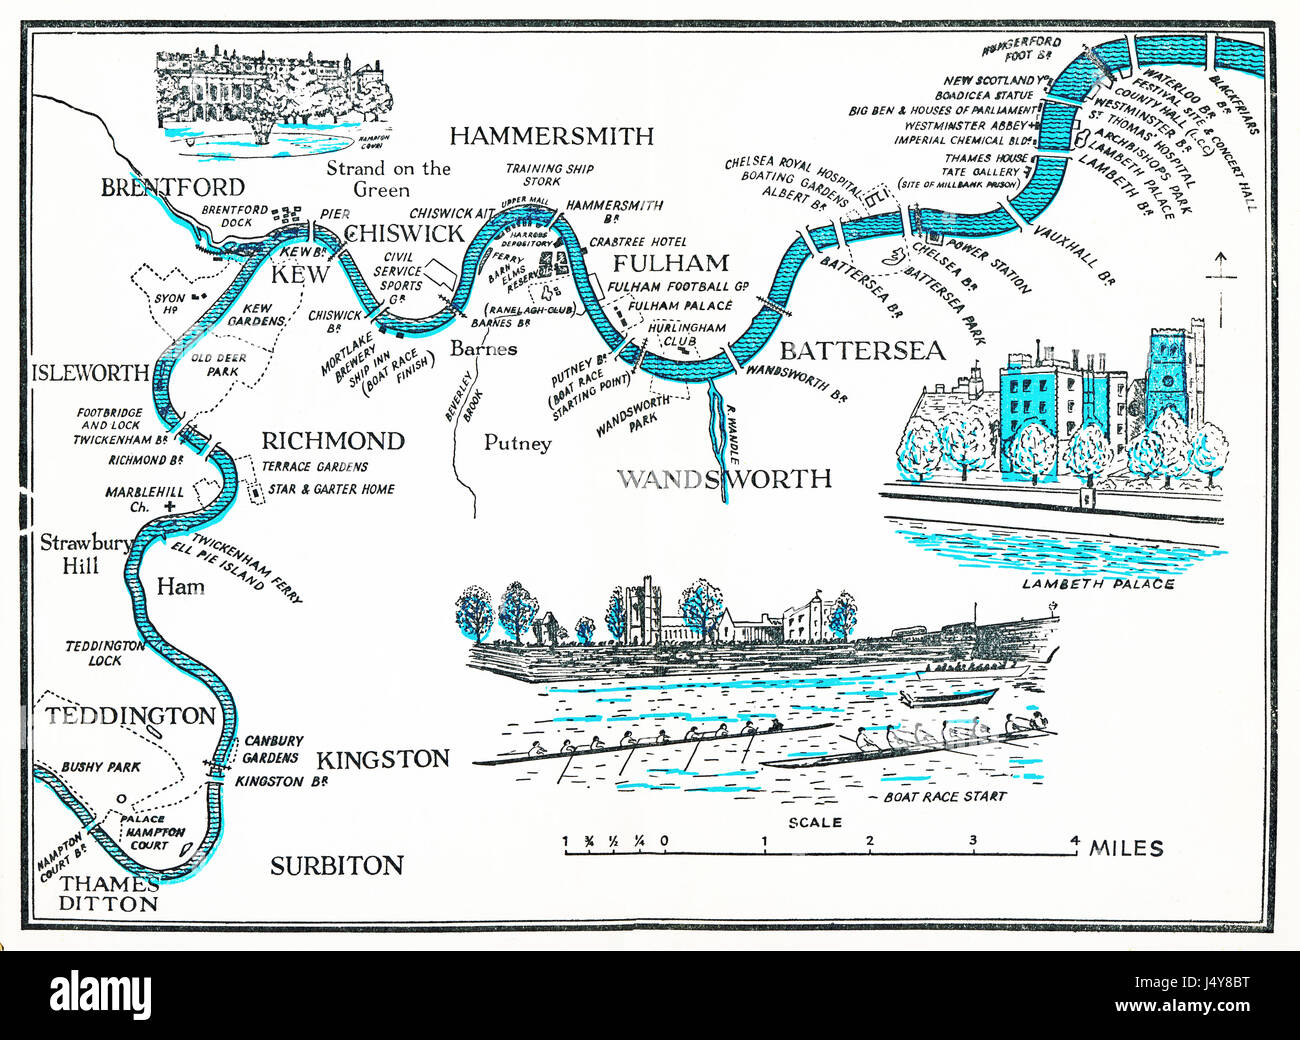 London Points Of Interest Map.Rowing Map Of The Thames 1955 Illustrated Plan Of The River Thames